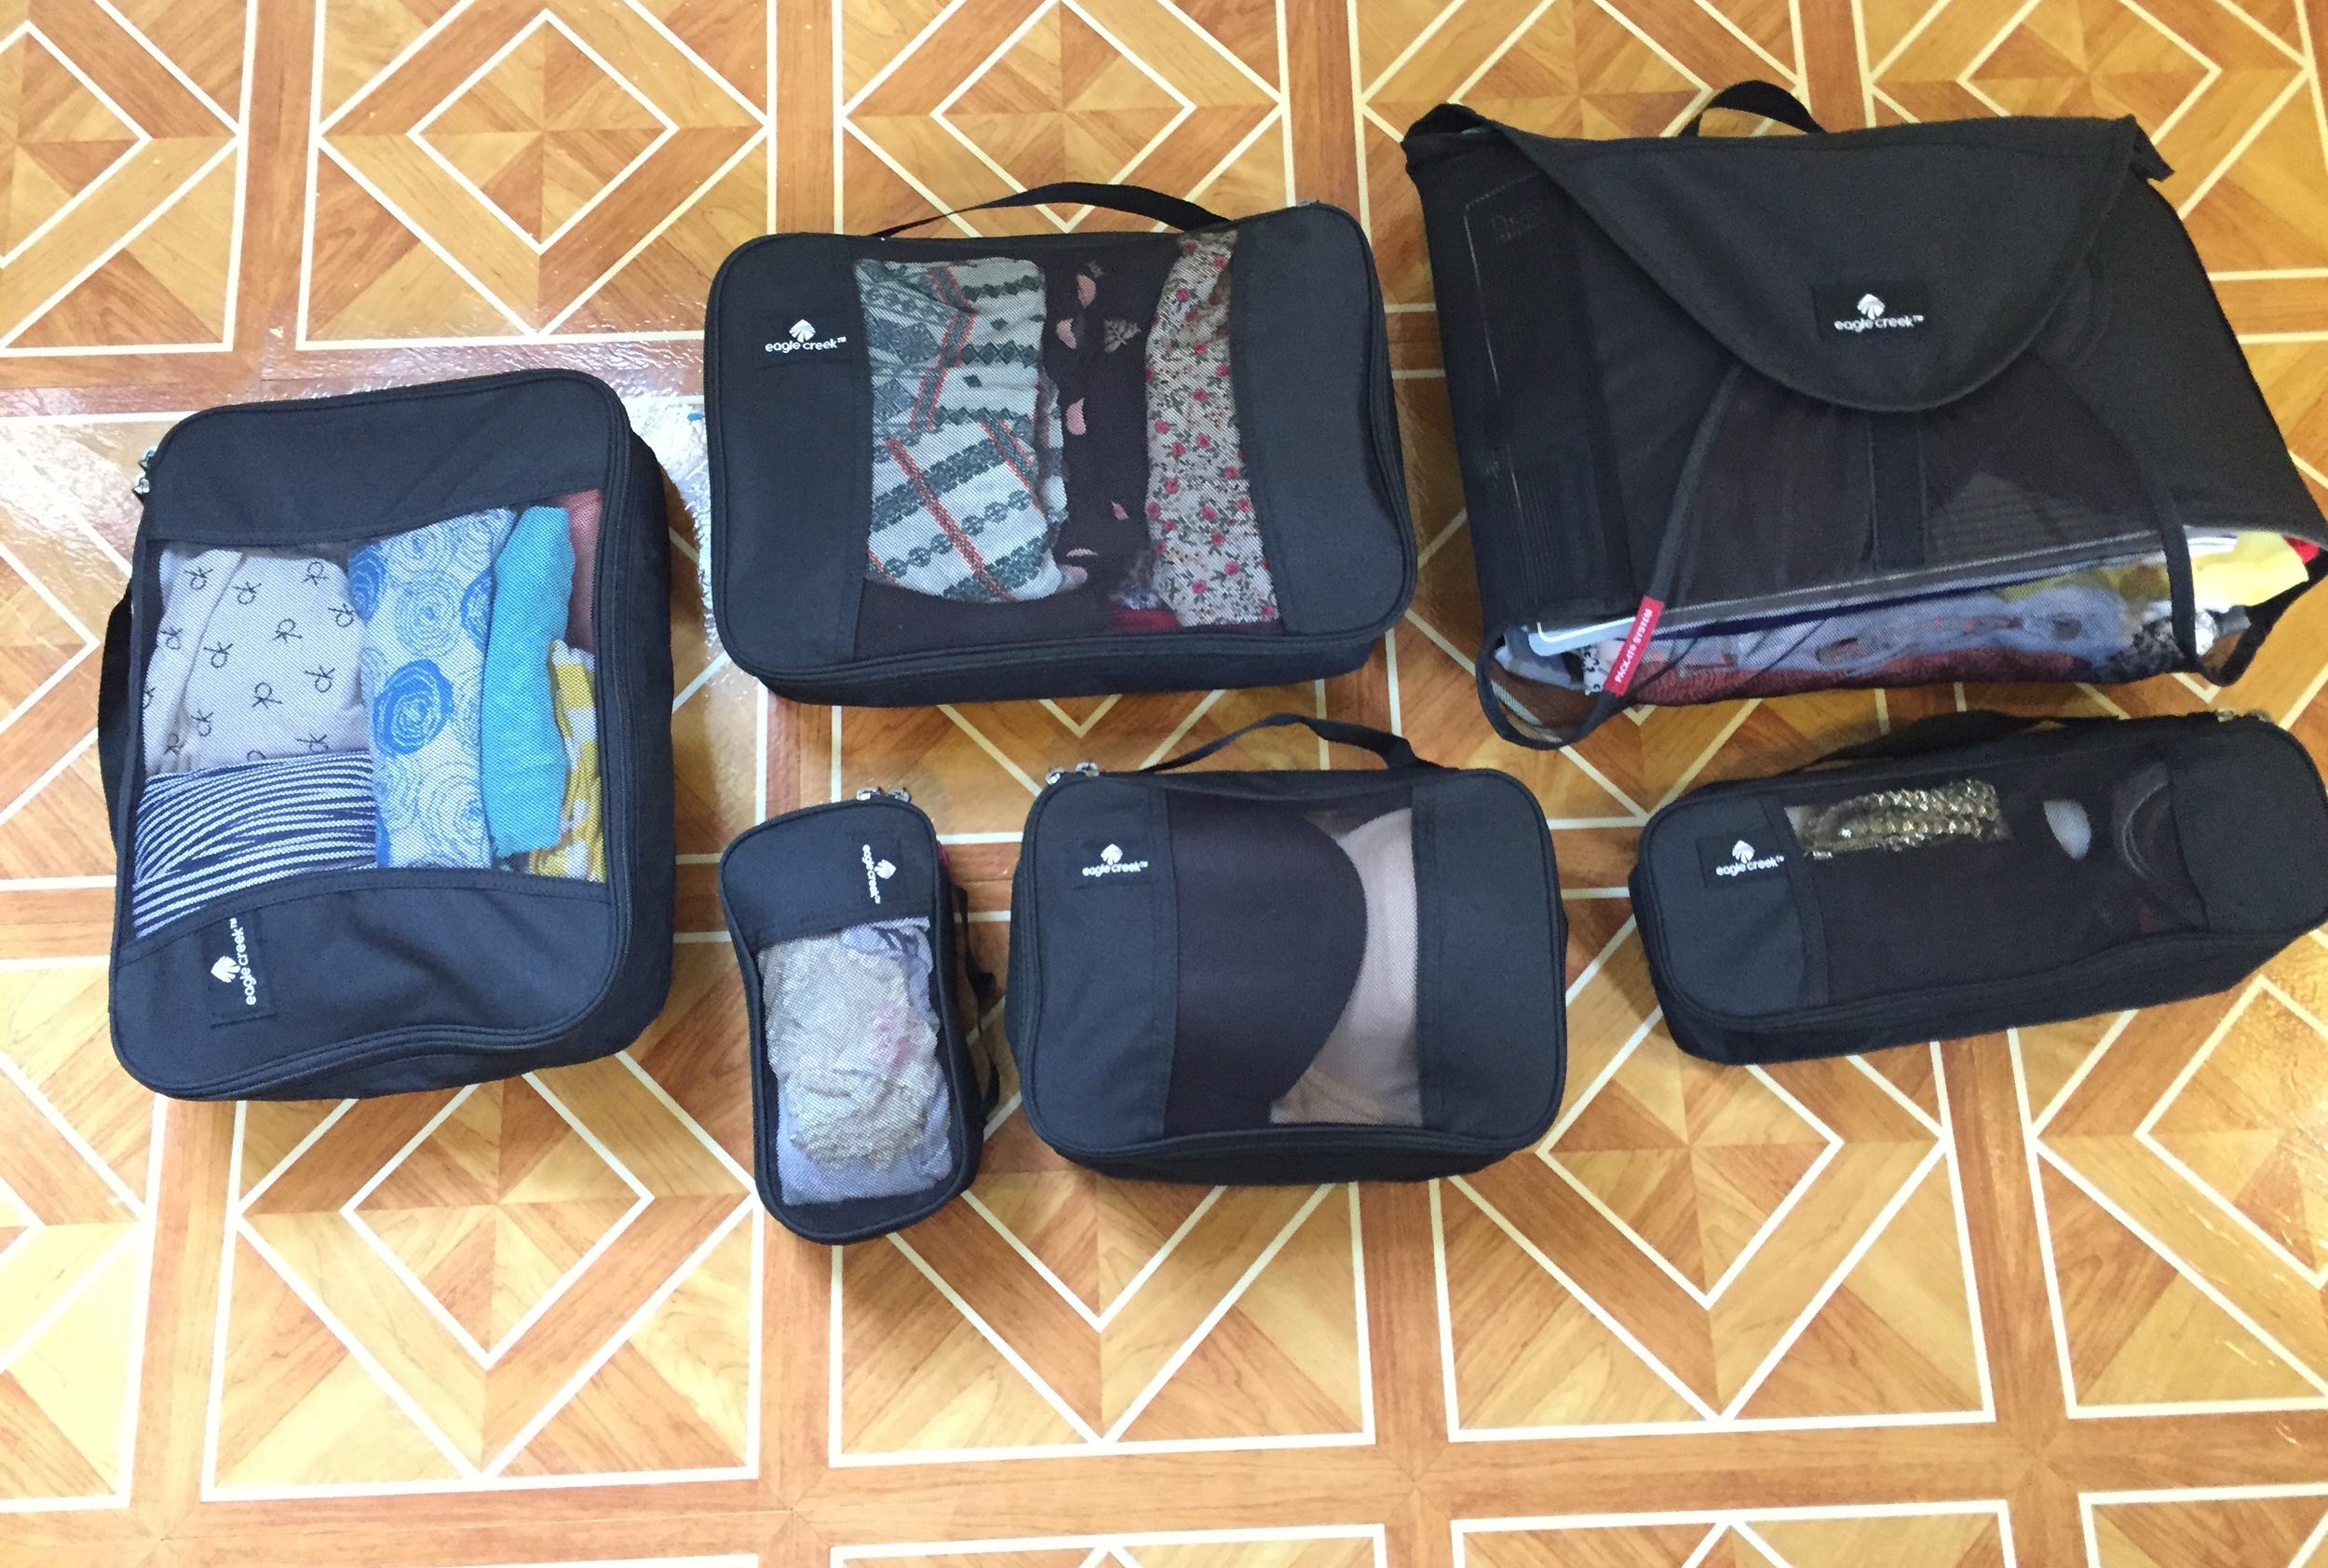 Everything is organized into different packing cubes